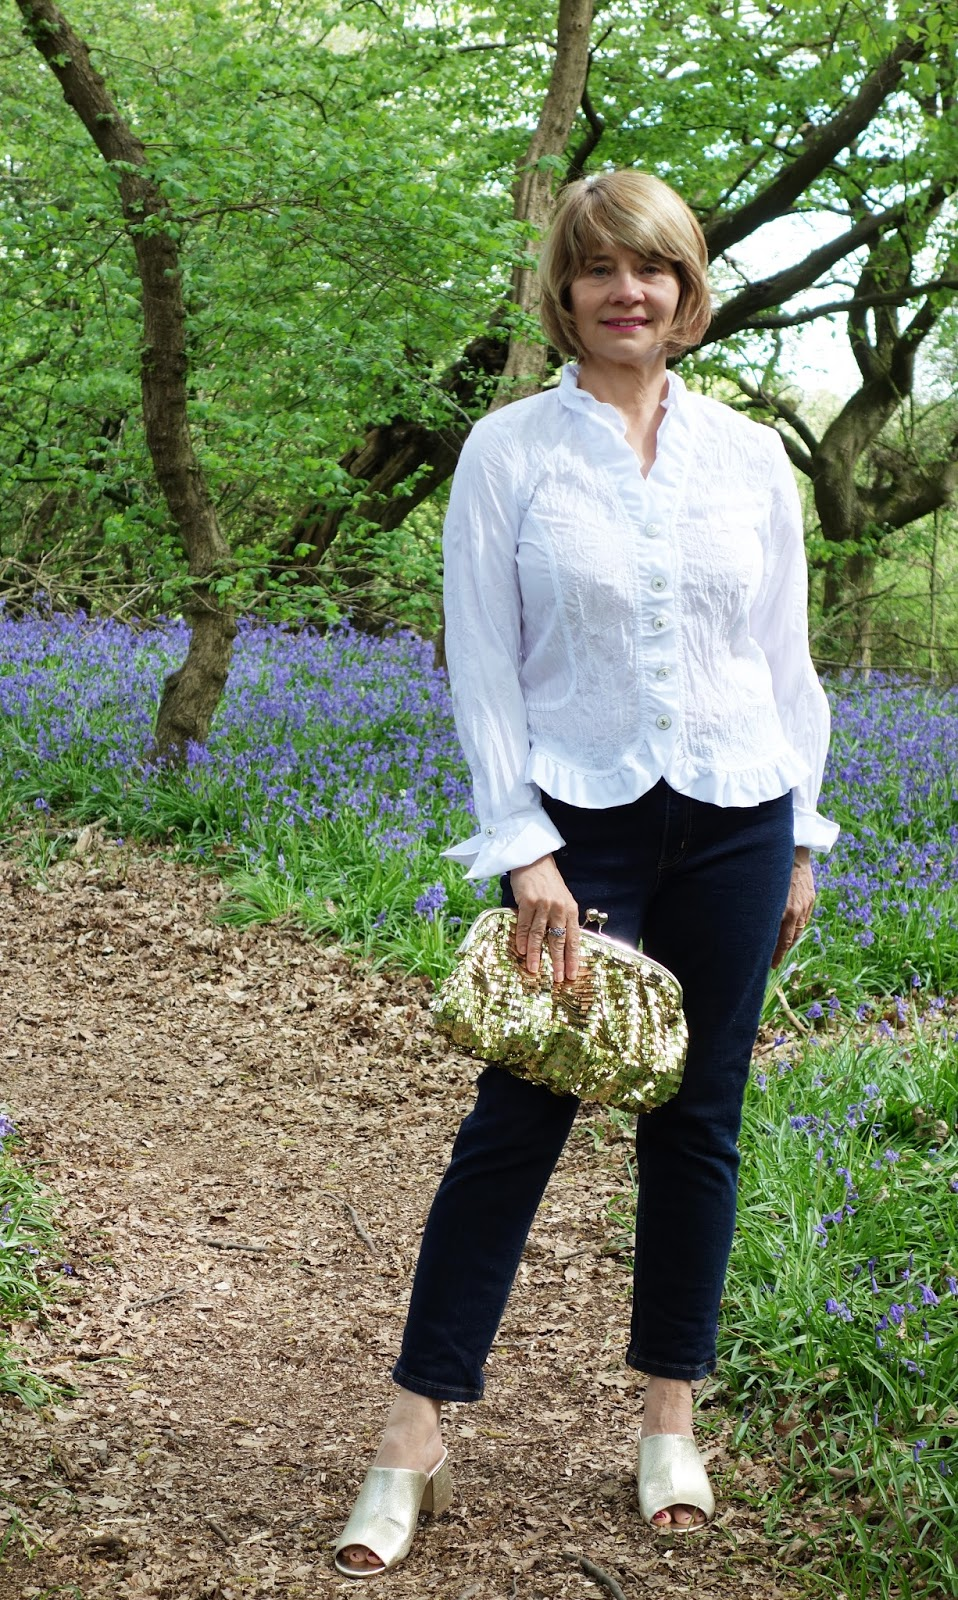 Dressed for a bluebell wood walk: Boden jeans, Peter Hahn white shirt and Marks and Spencer gold mules